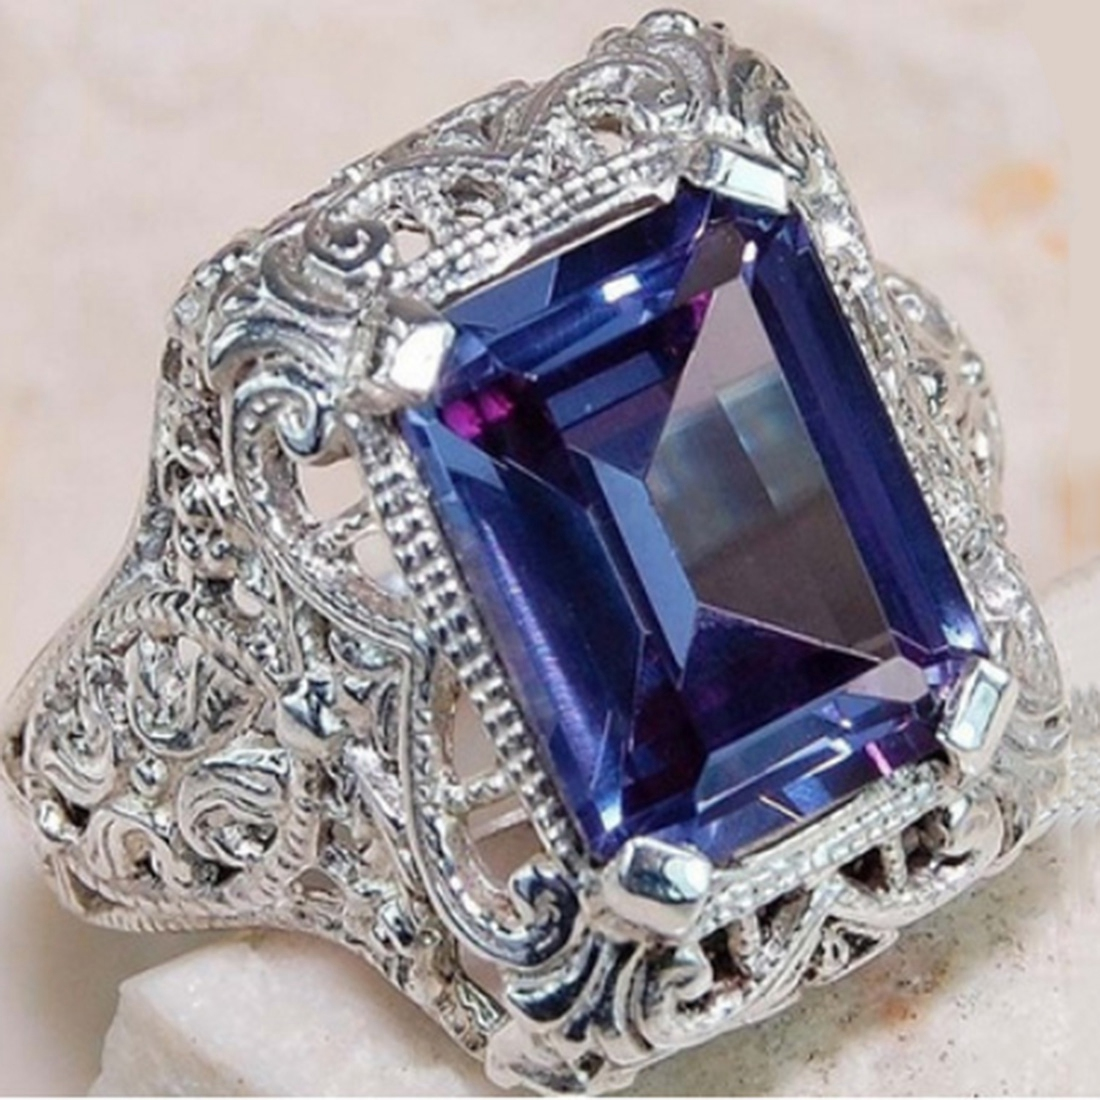 Big Blue CZ Zircon Stone Vintage Silver Rings for Women Fashion Wedding Engagement Jewelry Hot Sale